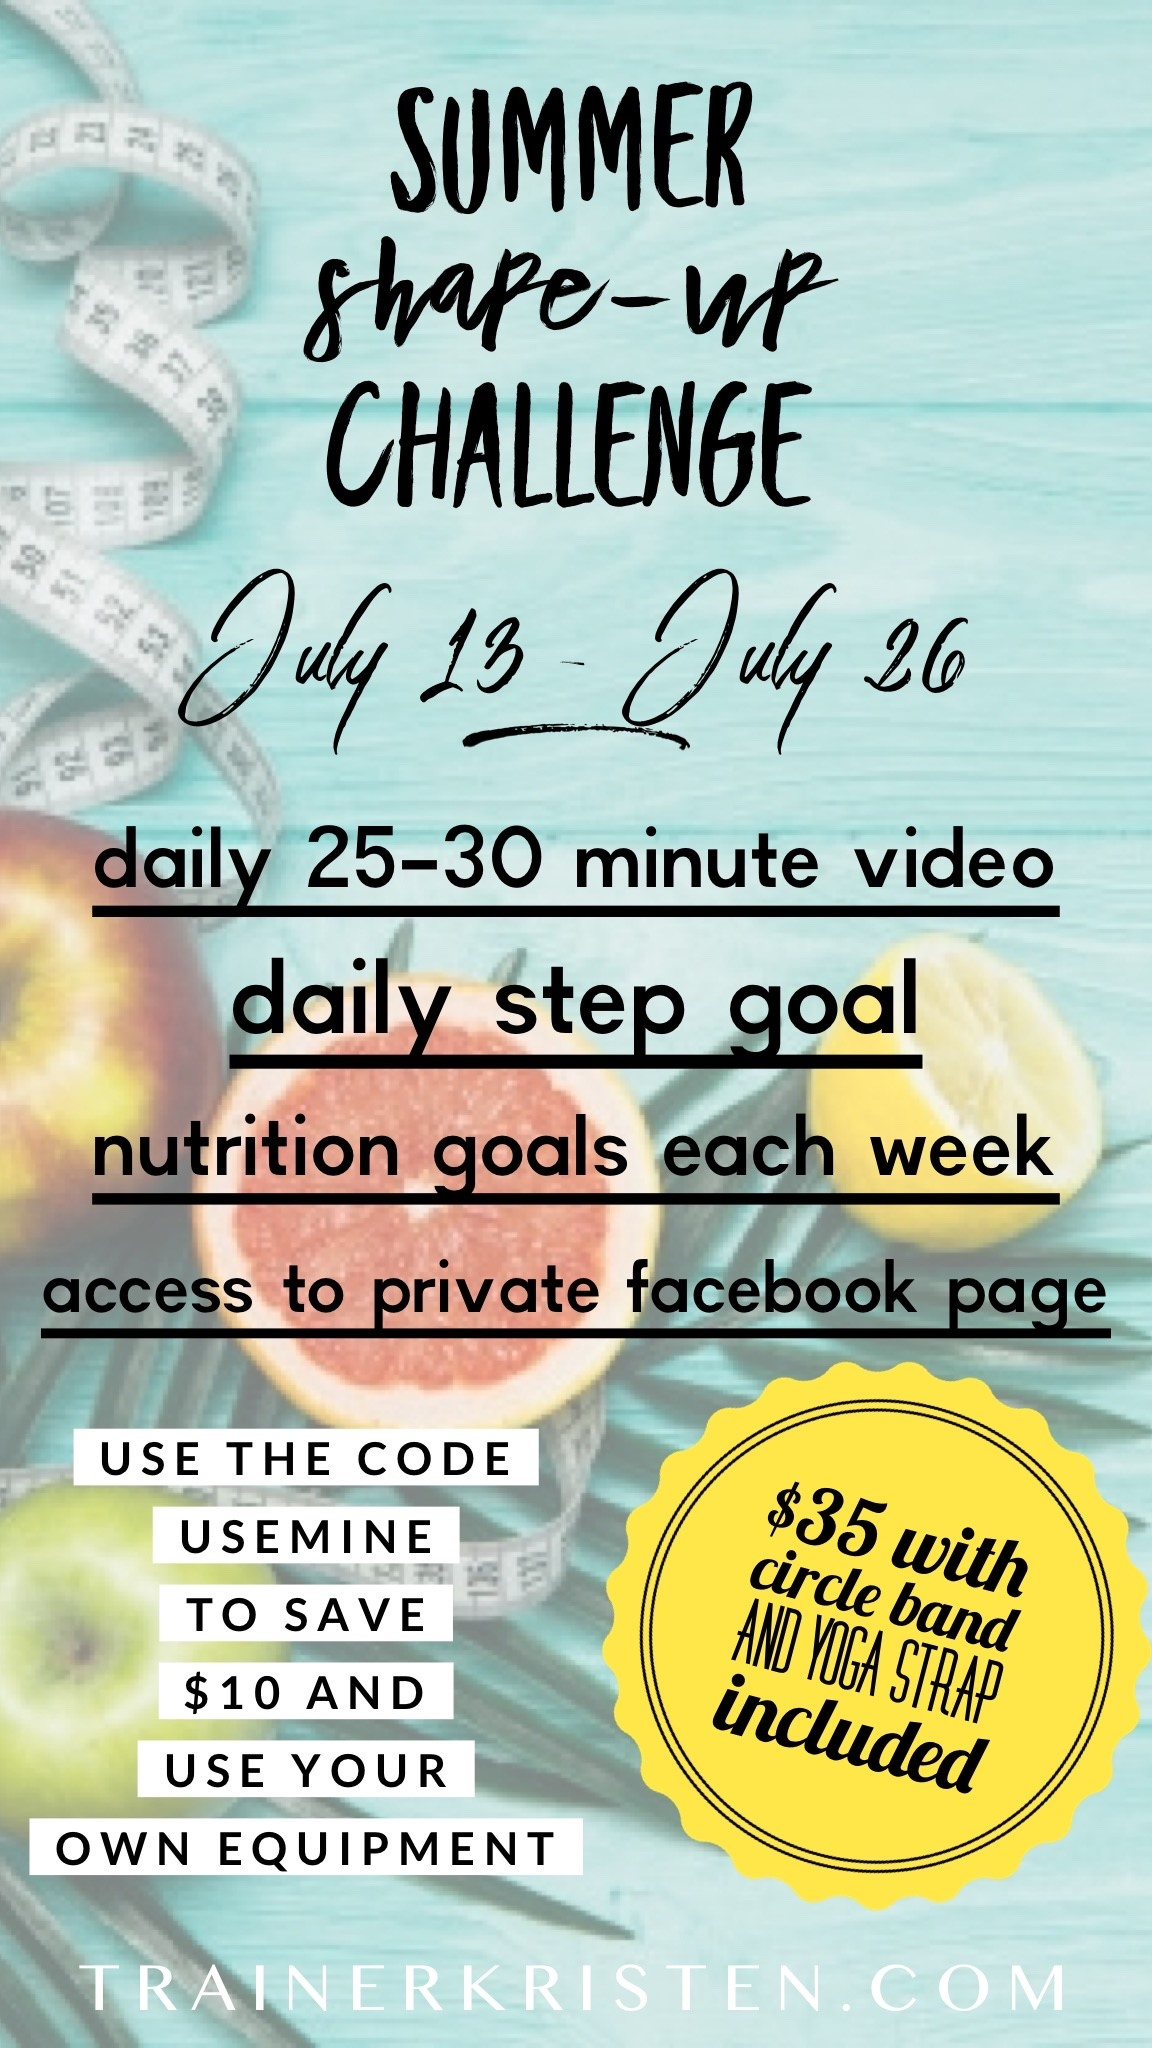 Summer Shape-Up Challenge